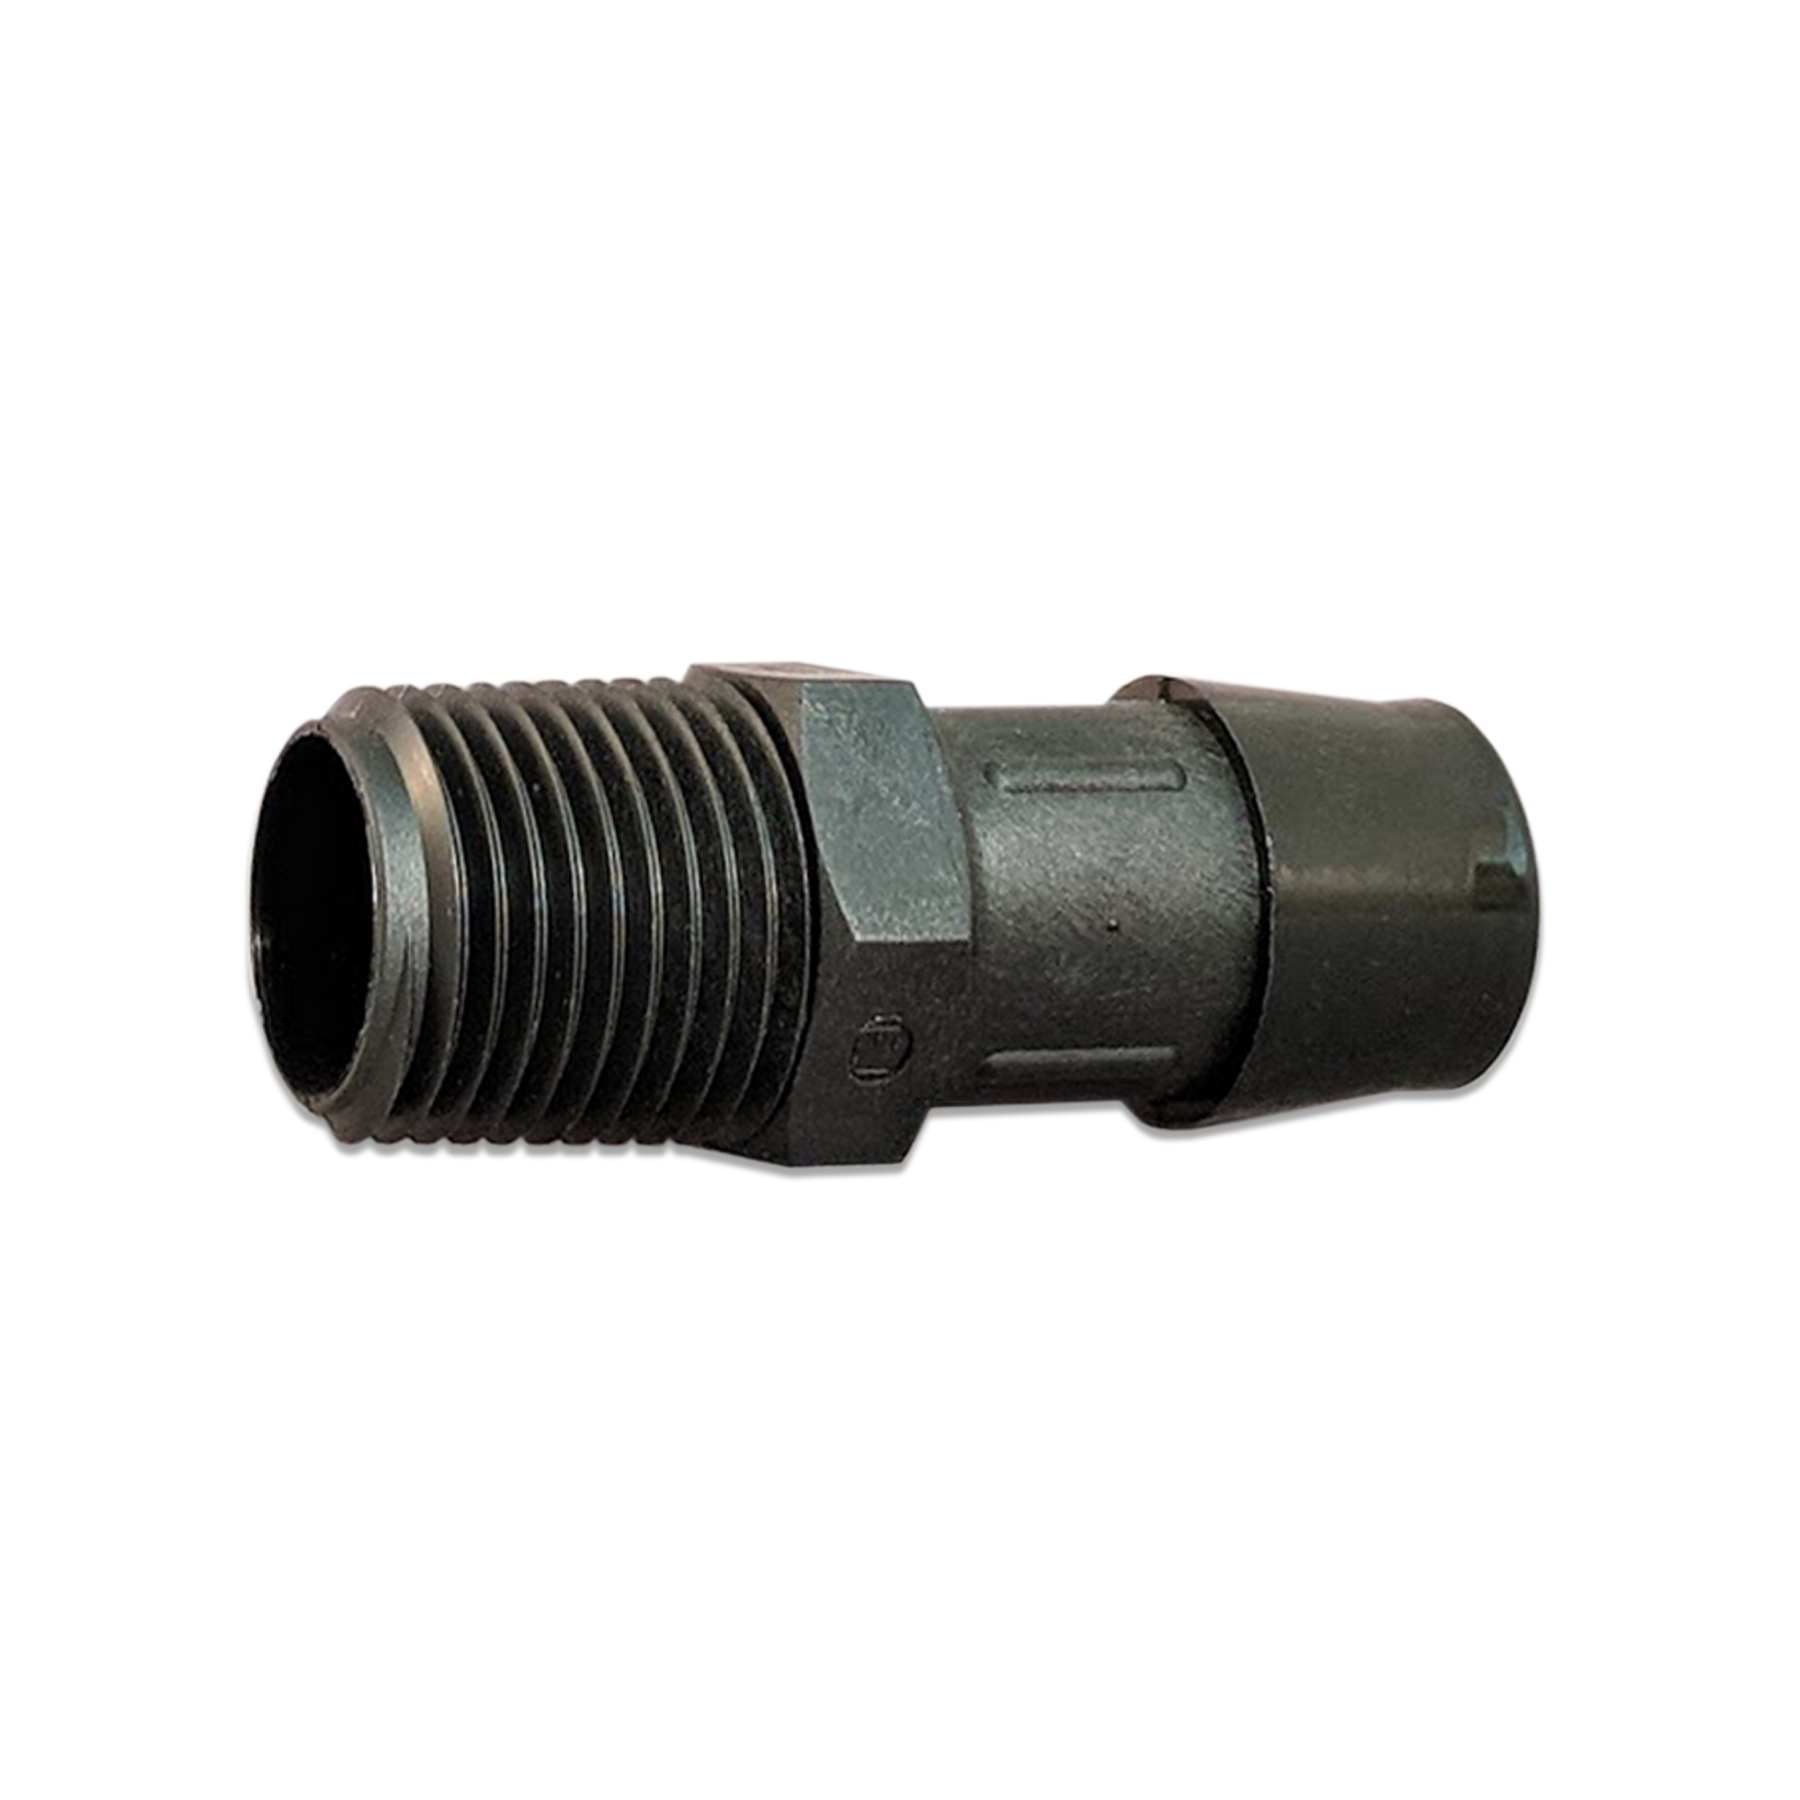 Glass Filled Black Nylon Barb Fitting, 1/2 in. NPT x 3/4 in.